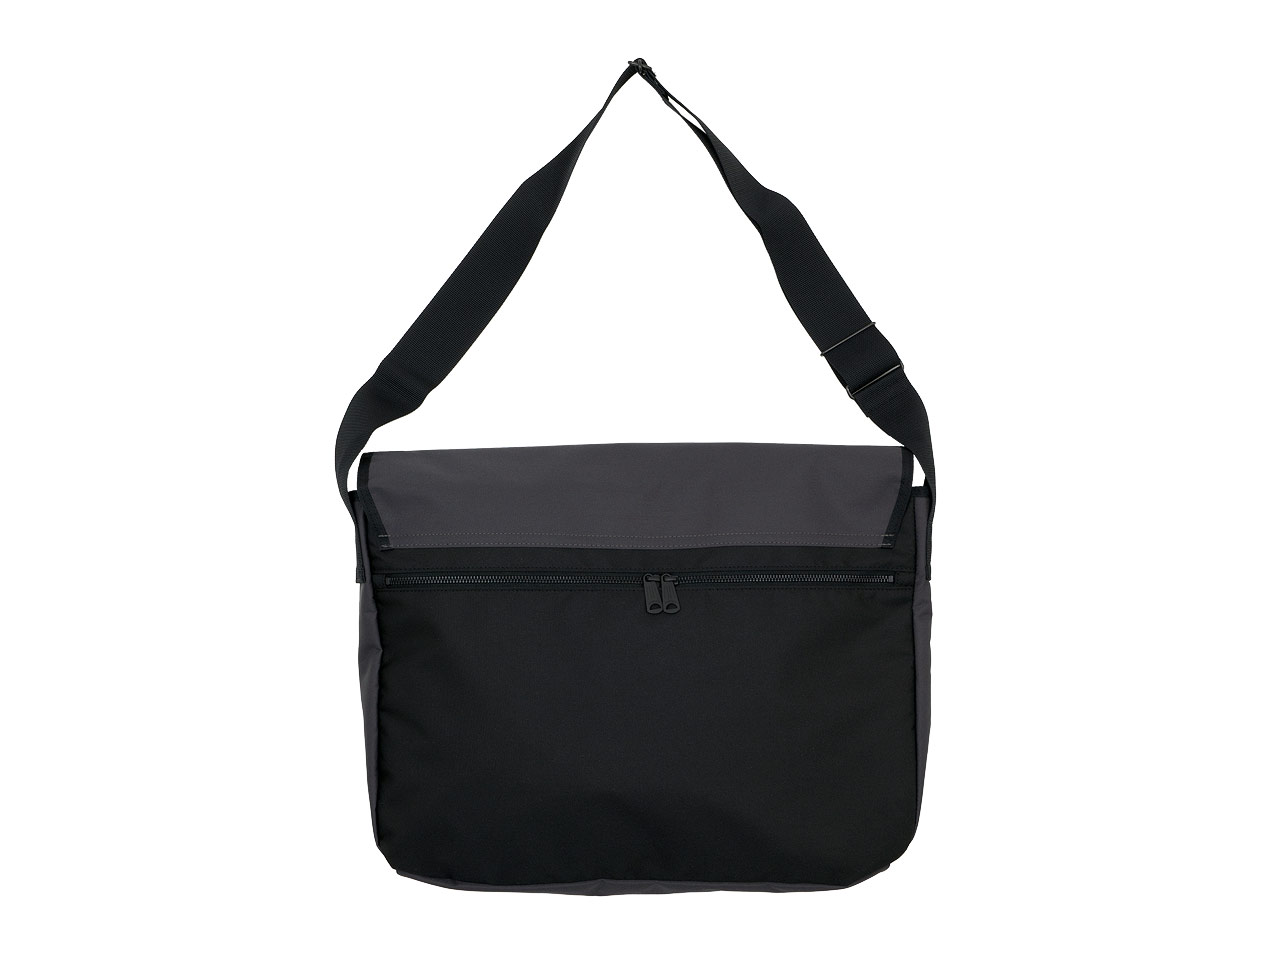 MARGARET HOWELL x PORTER CORDURA CANVAS MESSENGER BAG